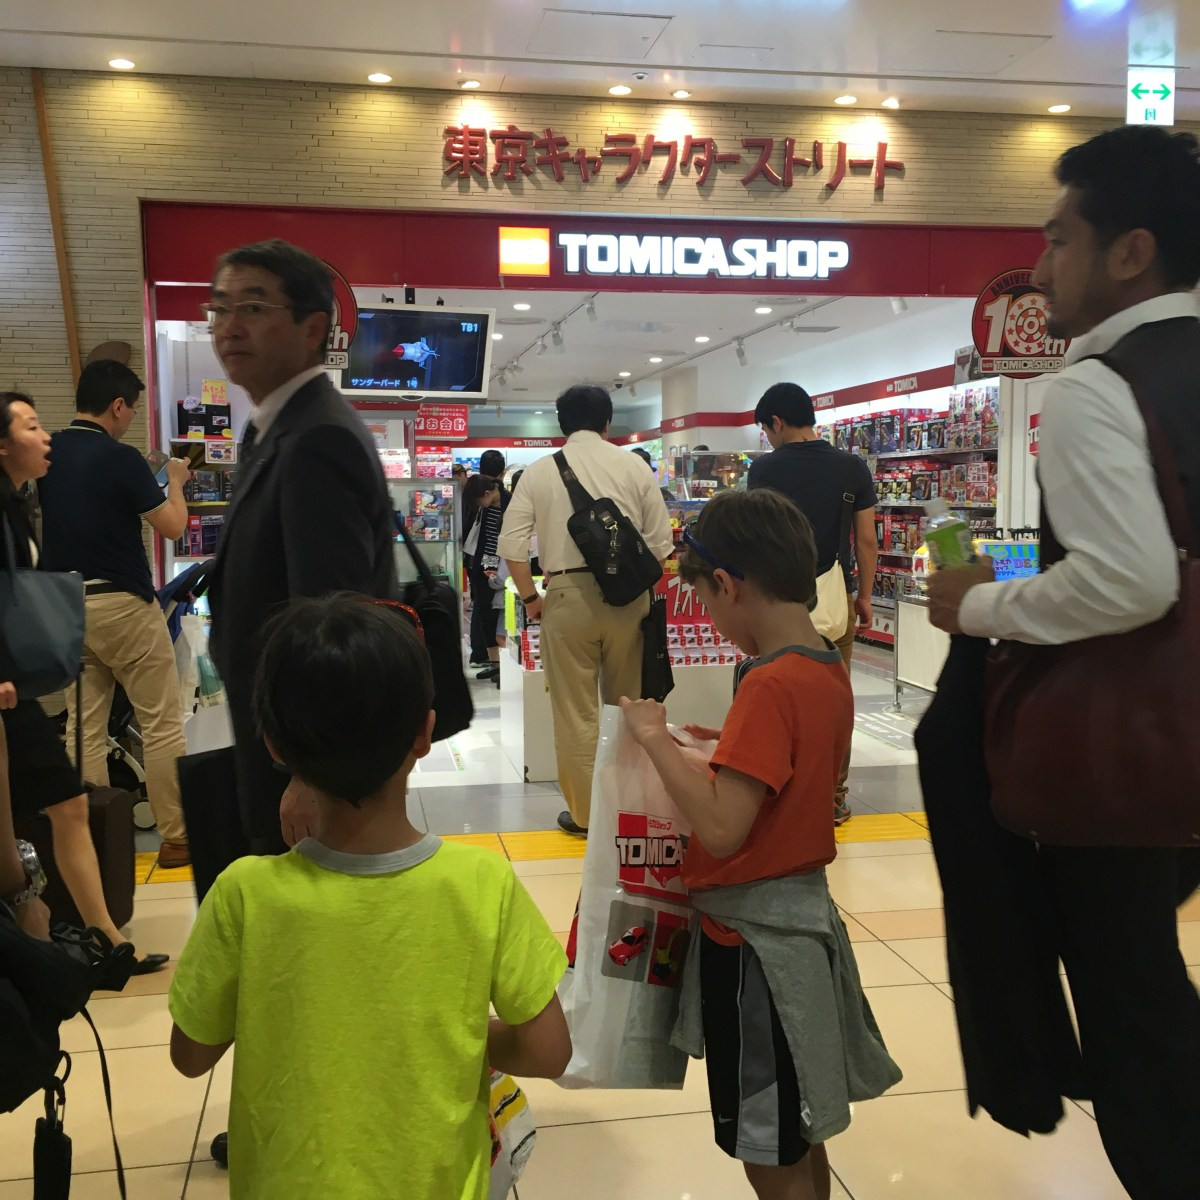 Build your Own Tomica Cars in Tokyo Japan, a perfect stop for families on a trip to Japan